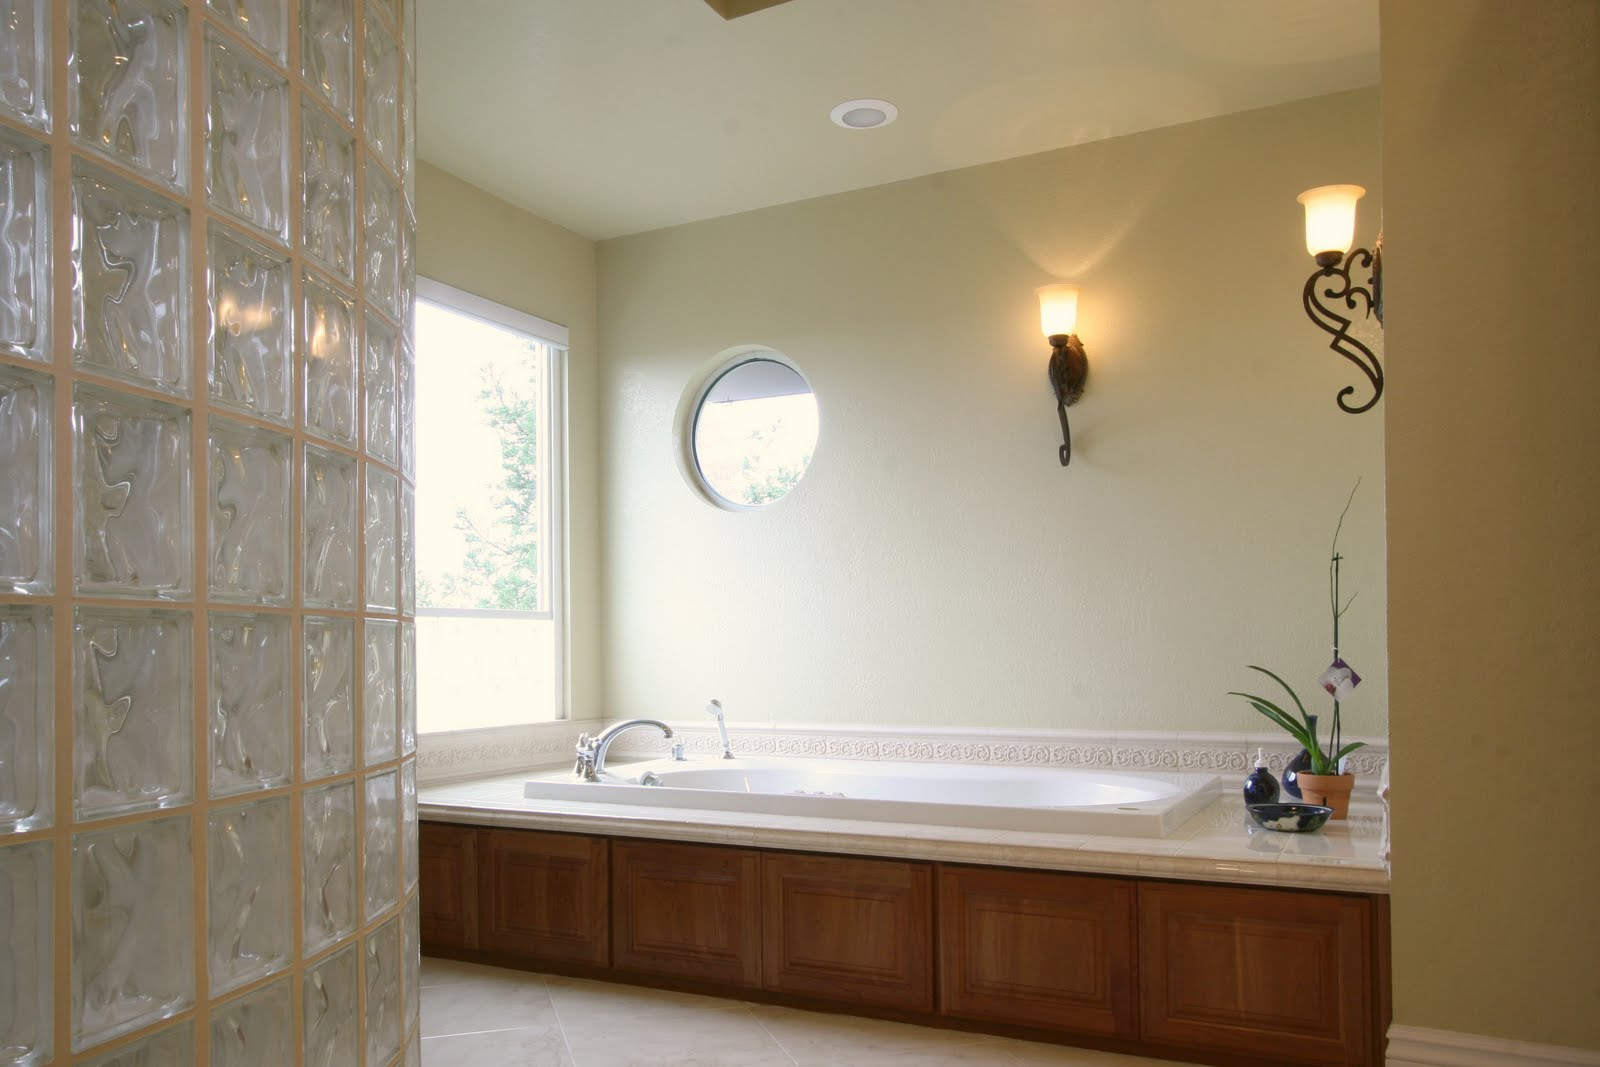 Download free software new bath tub installation motorsfile for 0 bathroom installation